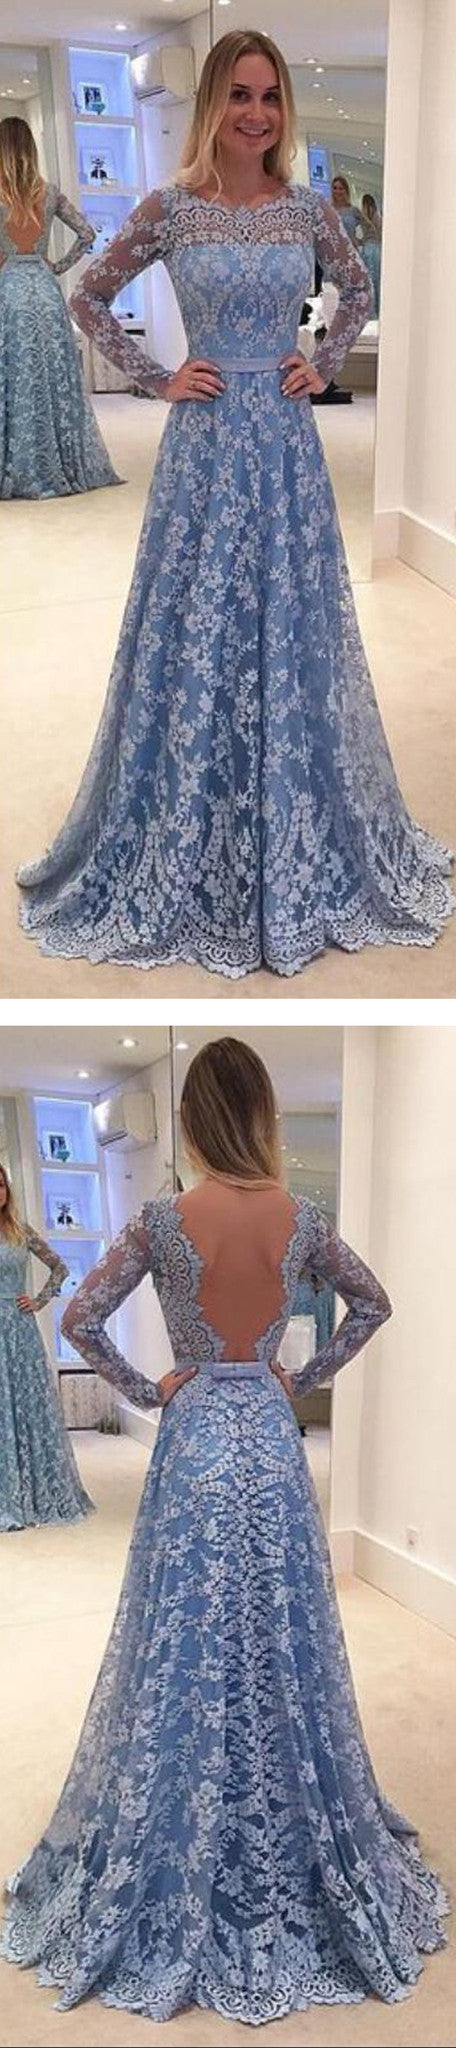 Long Sleeves Formal Party Evening Long Lace Prom Dresses, BG51110 - Bubble Gown